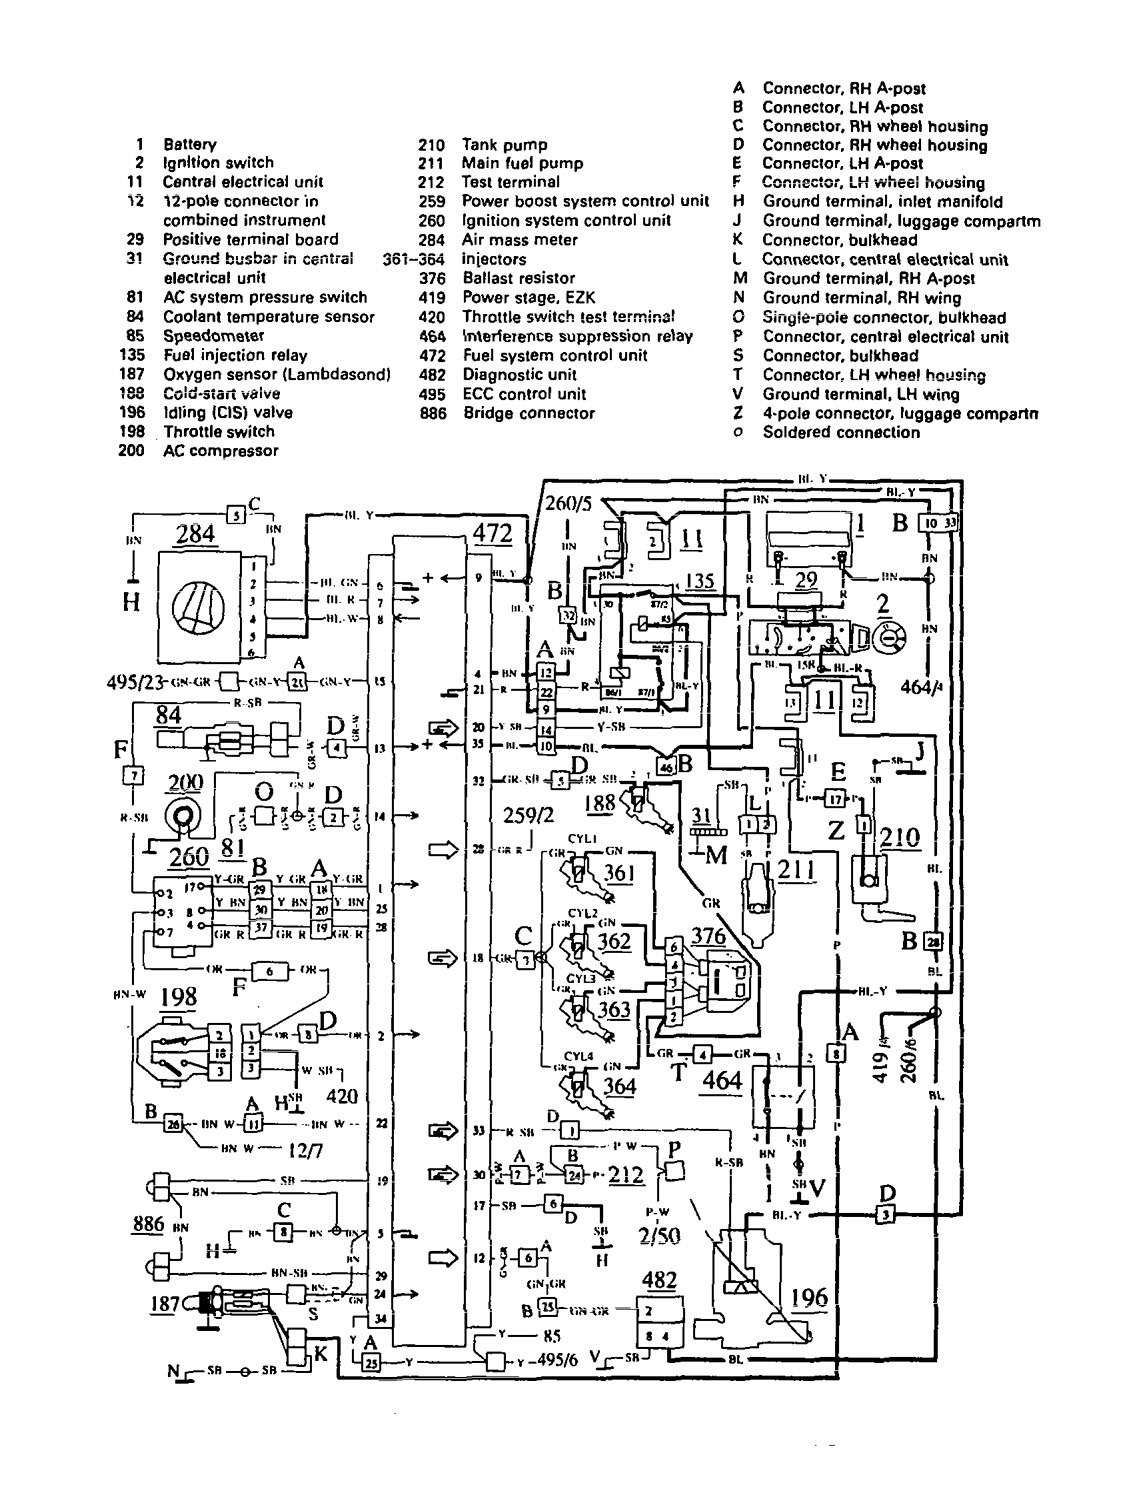 Bluebird Wiring Diagrams. Diagram. Auto Wiring Diagram